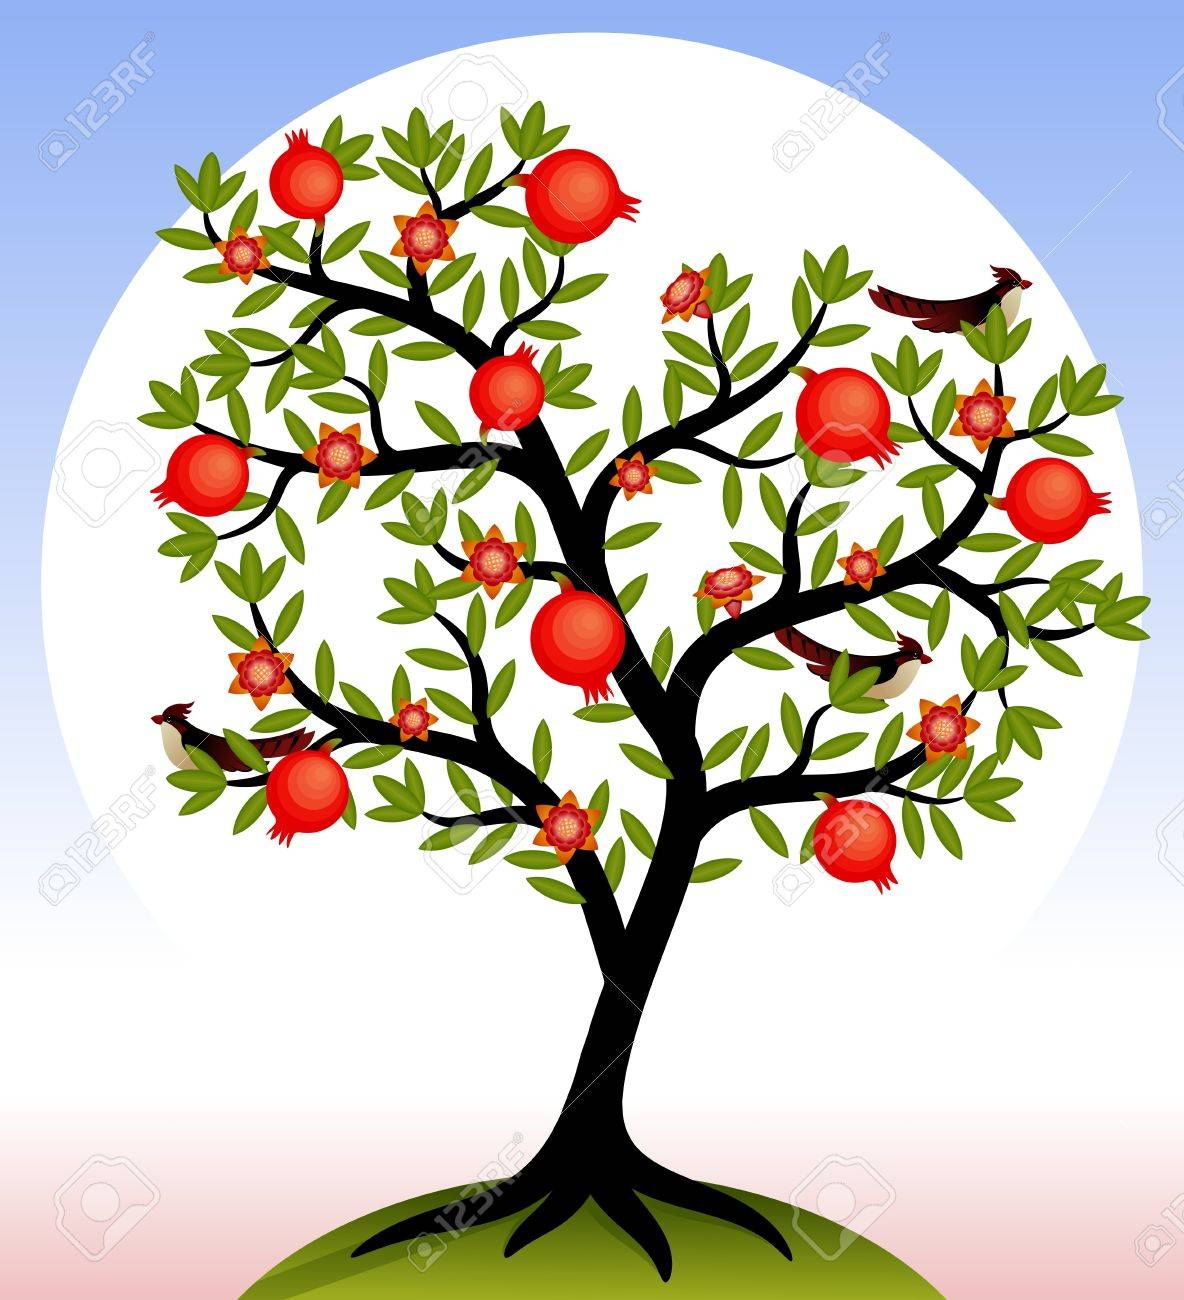 37 Pomegranate free clipart.